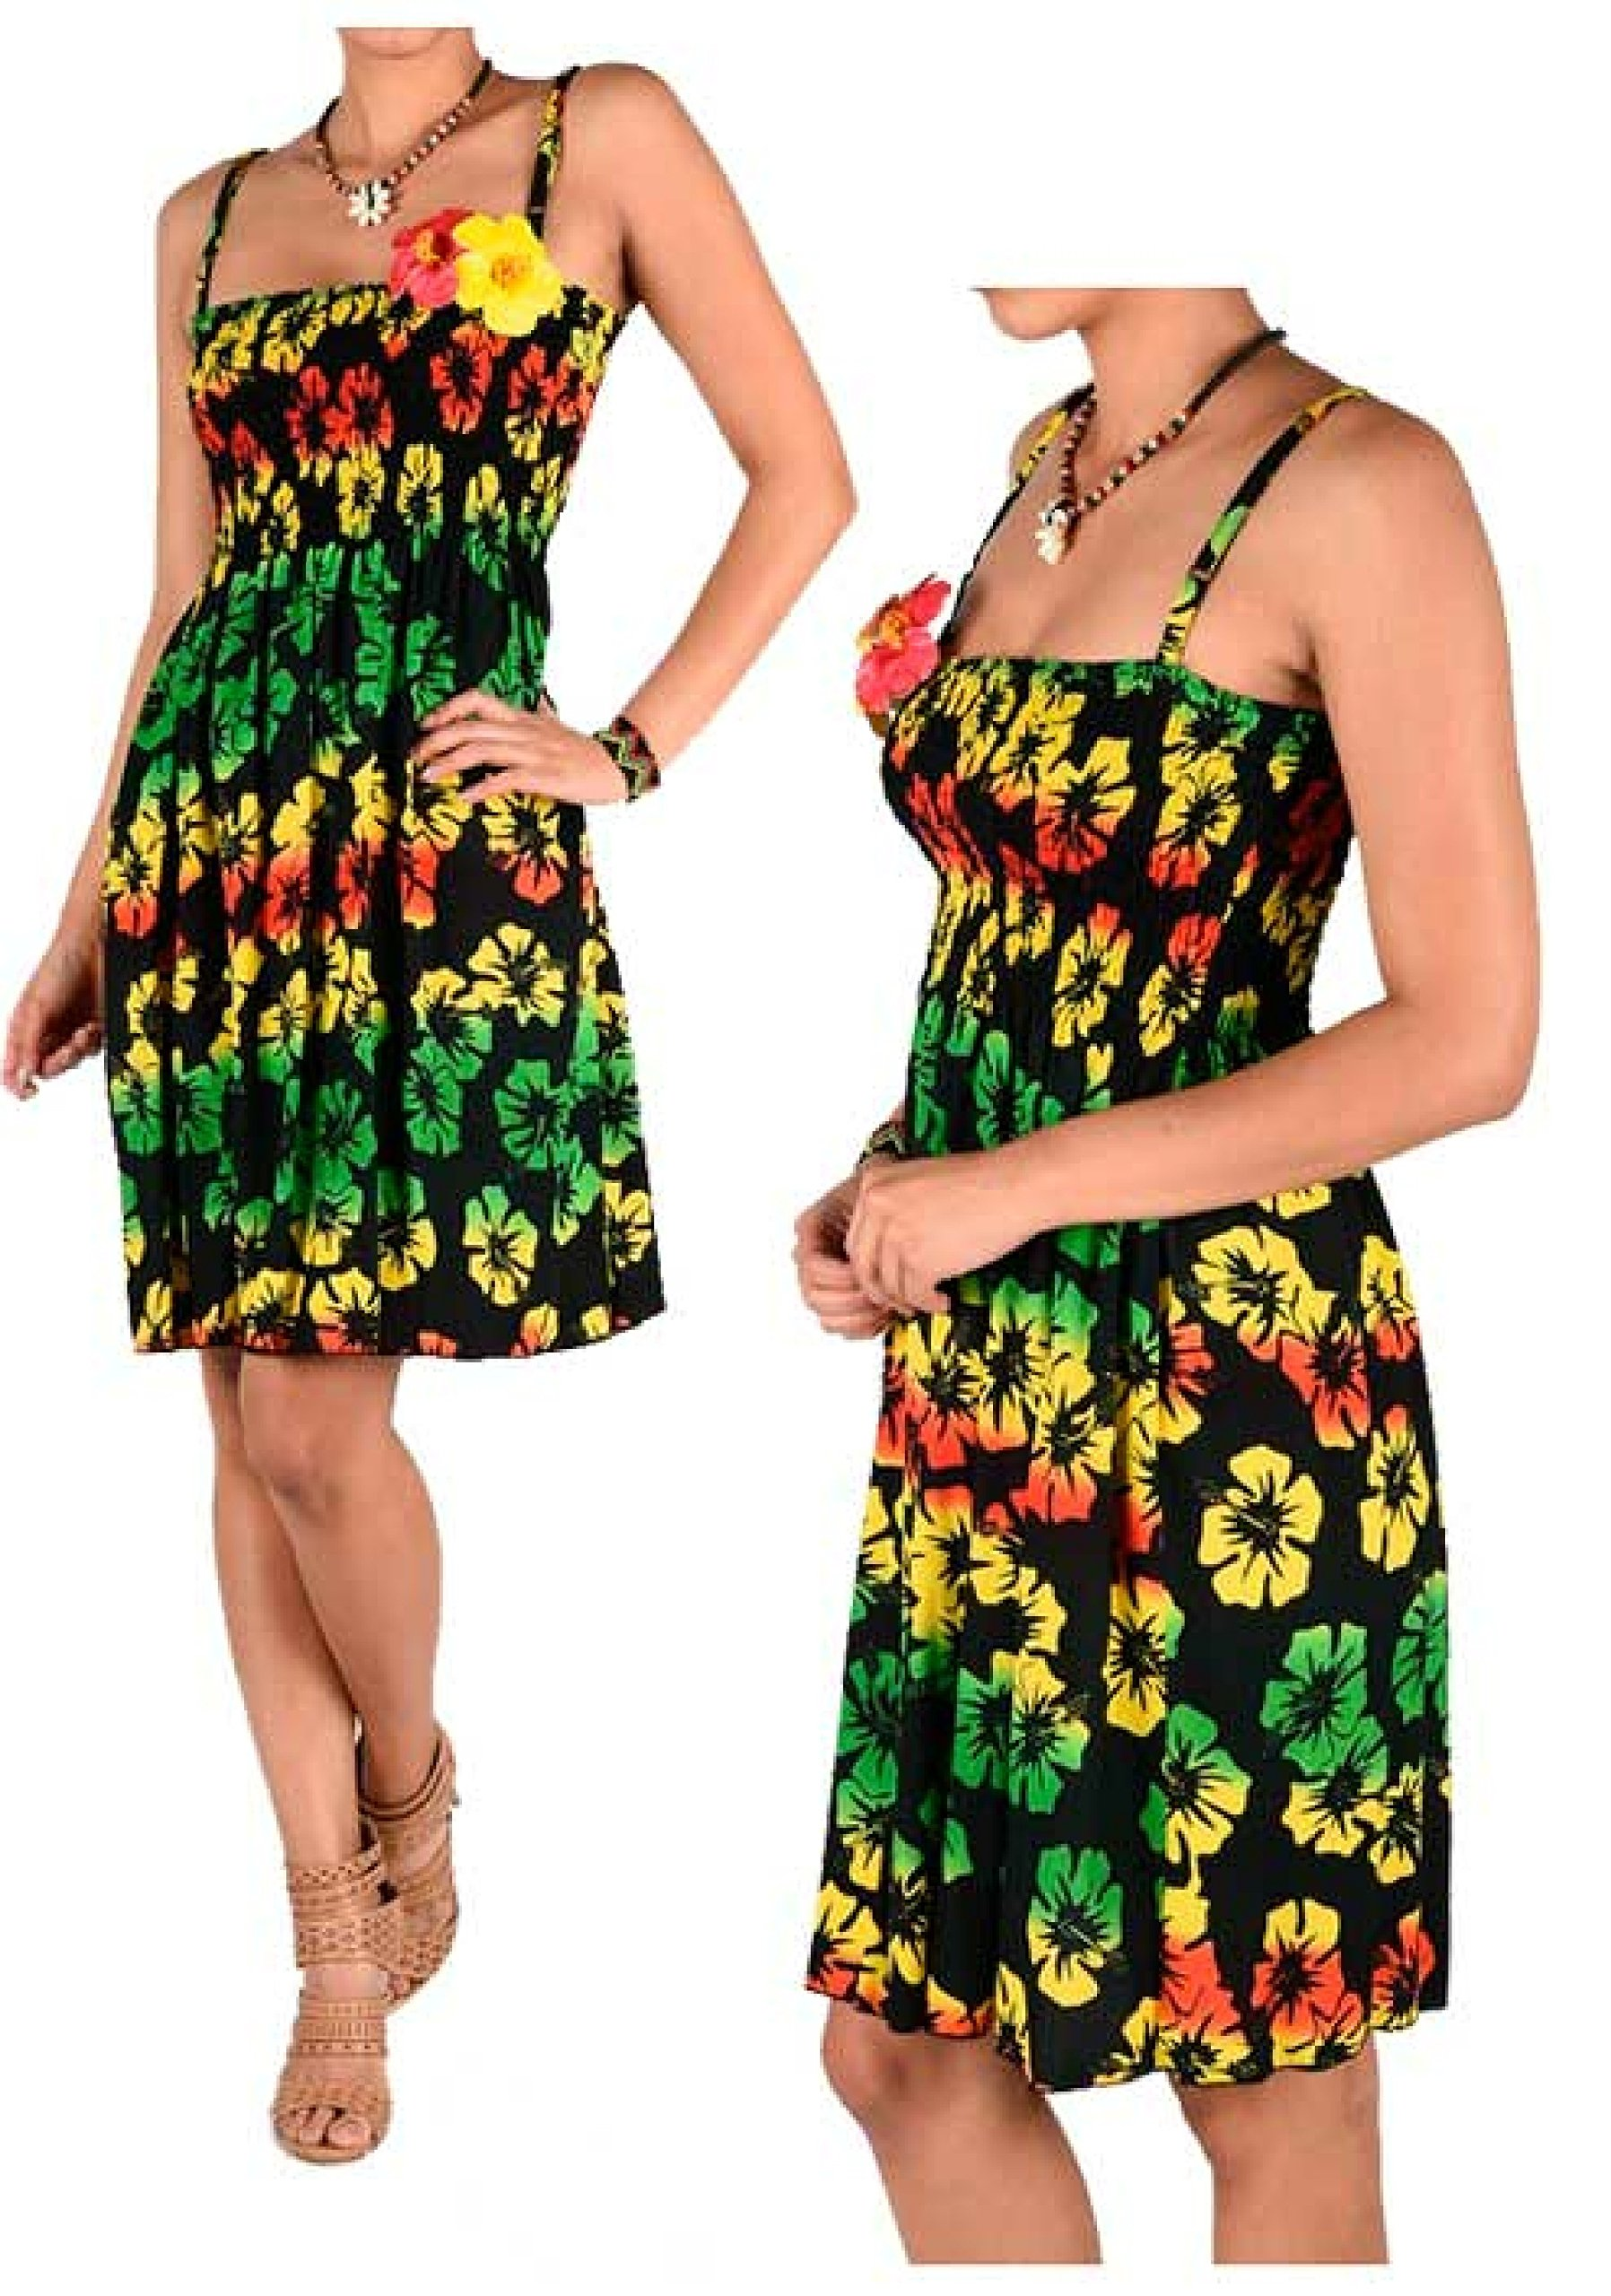 Women's Rasta Hibiscus Tropical Flowers Floral Leaves Beach Sundress Dress Rasta Dress 1 Size Fit Most